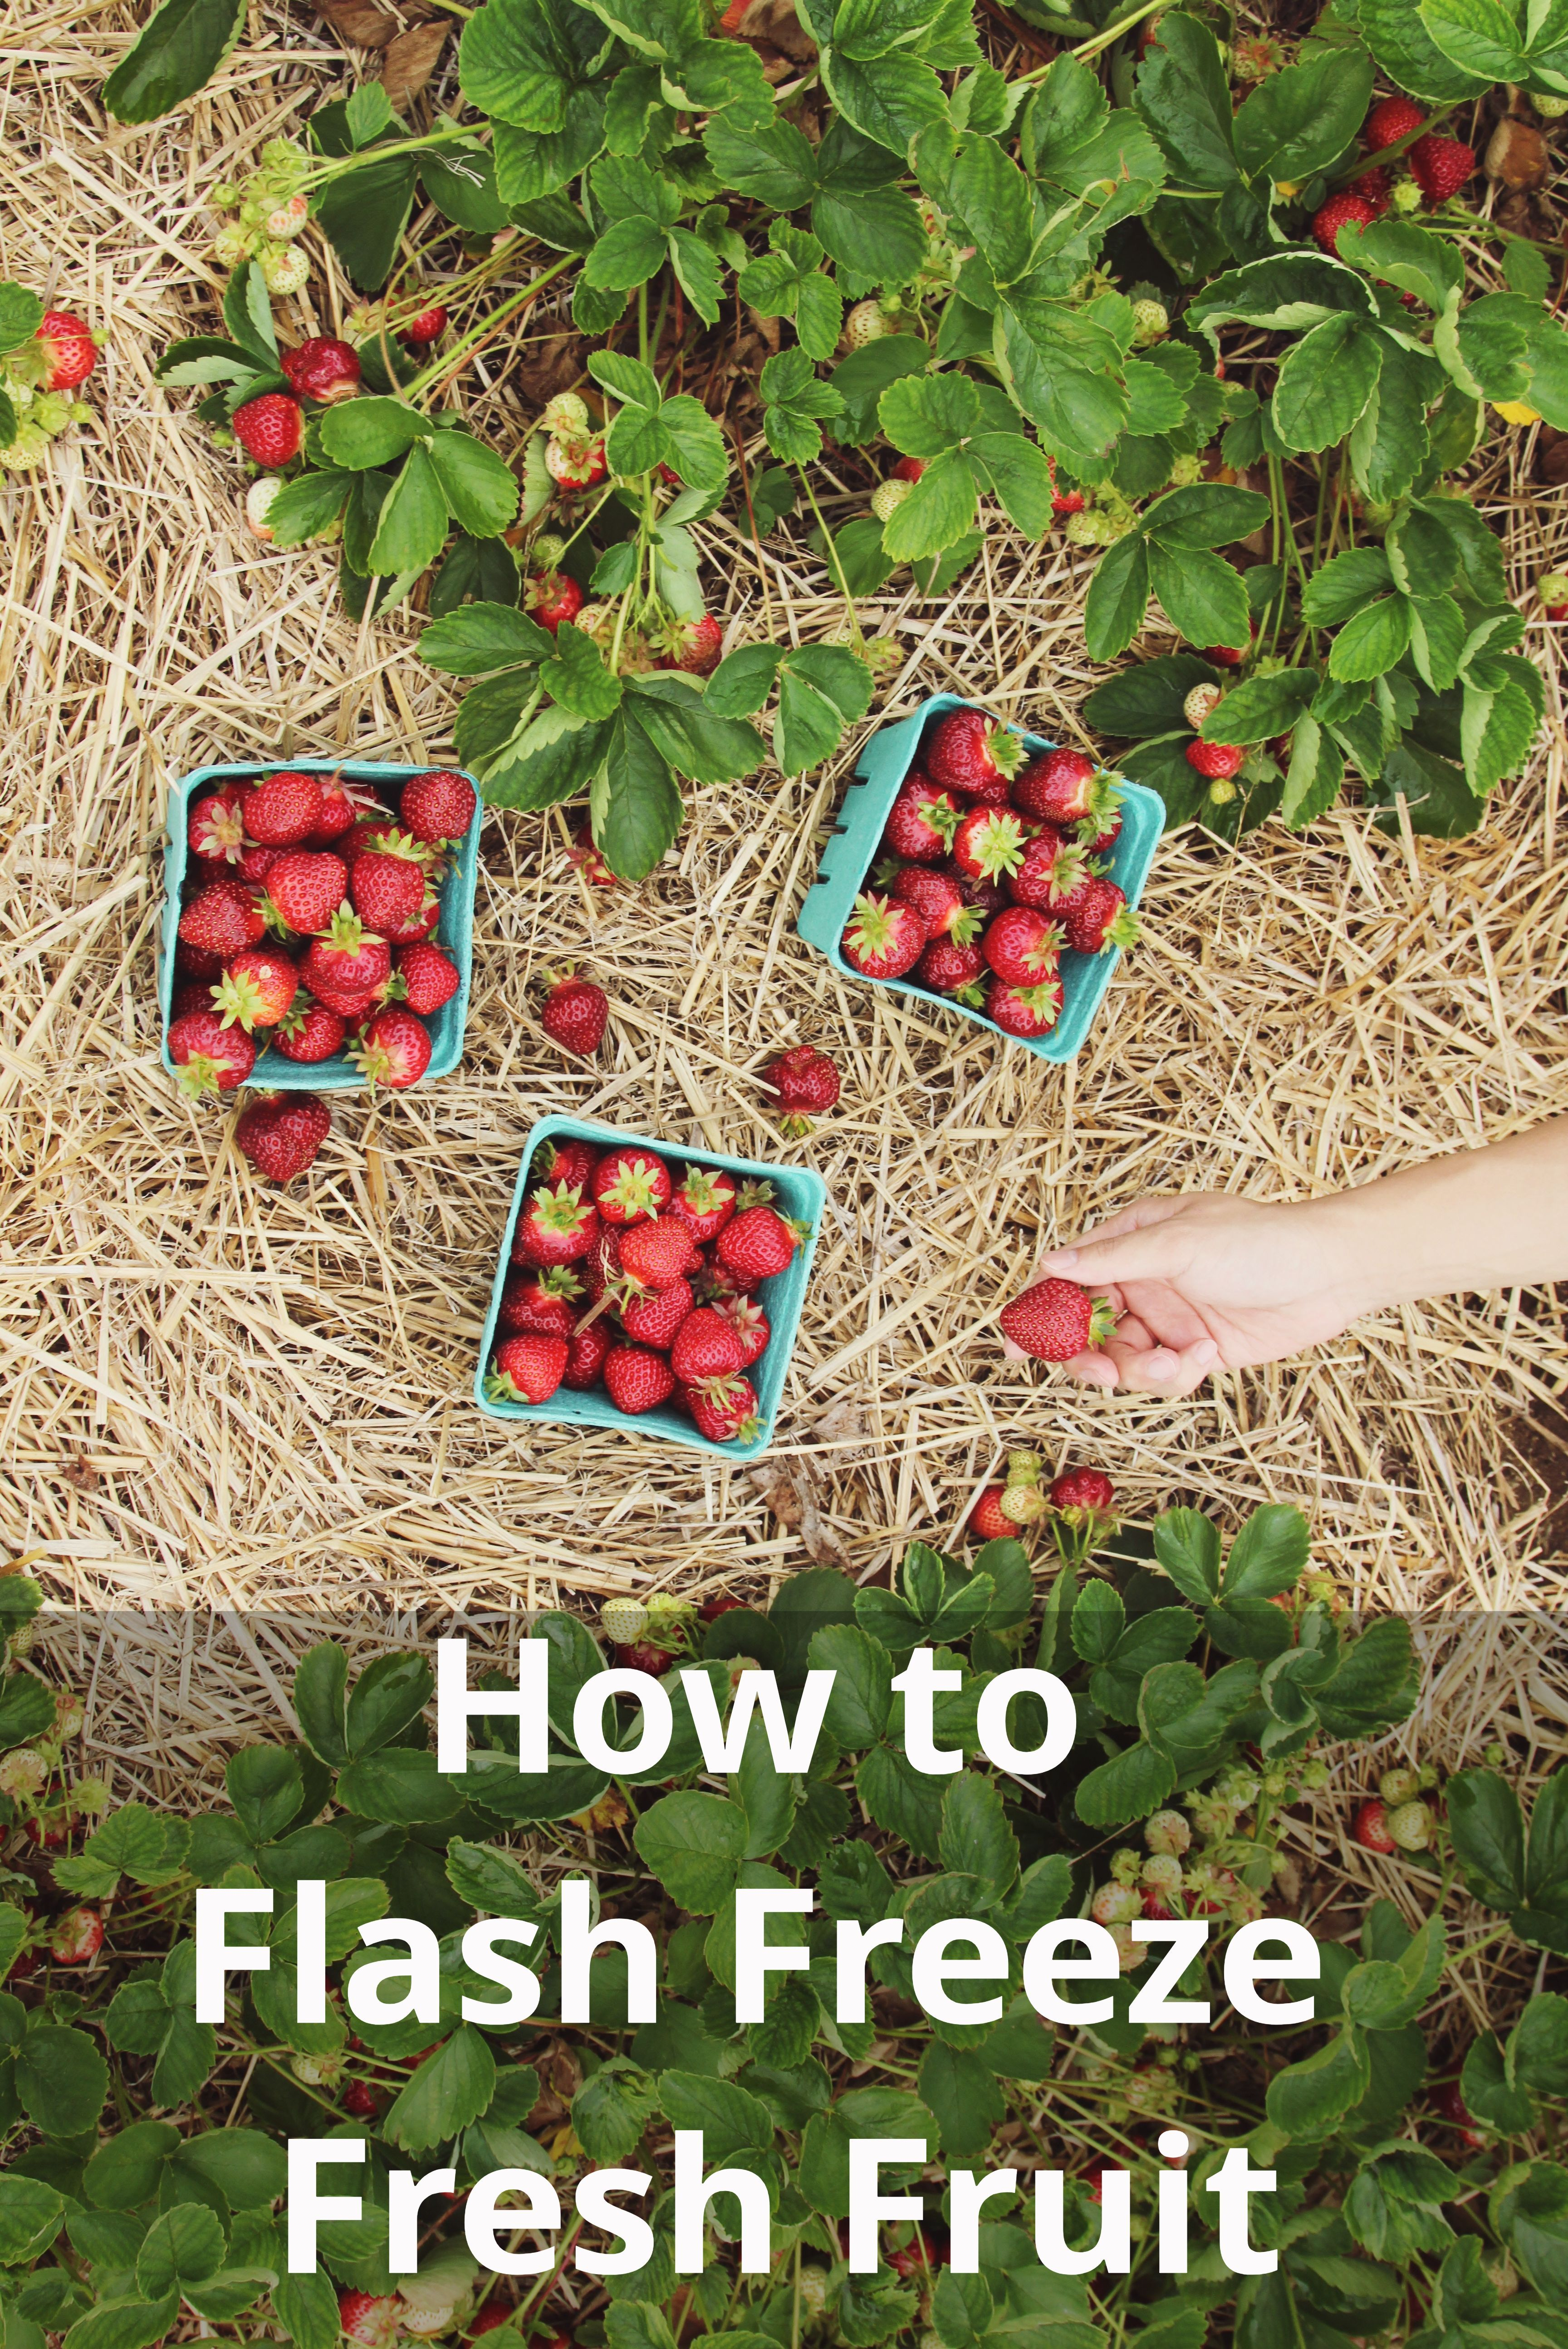 Going berry picking? With dry ice, you can flash freeze